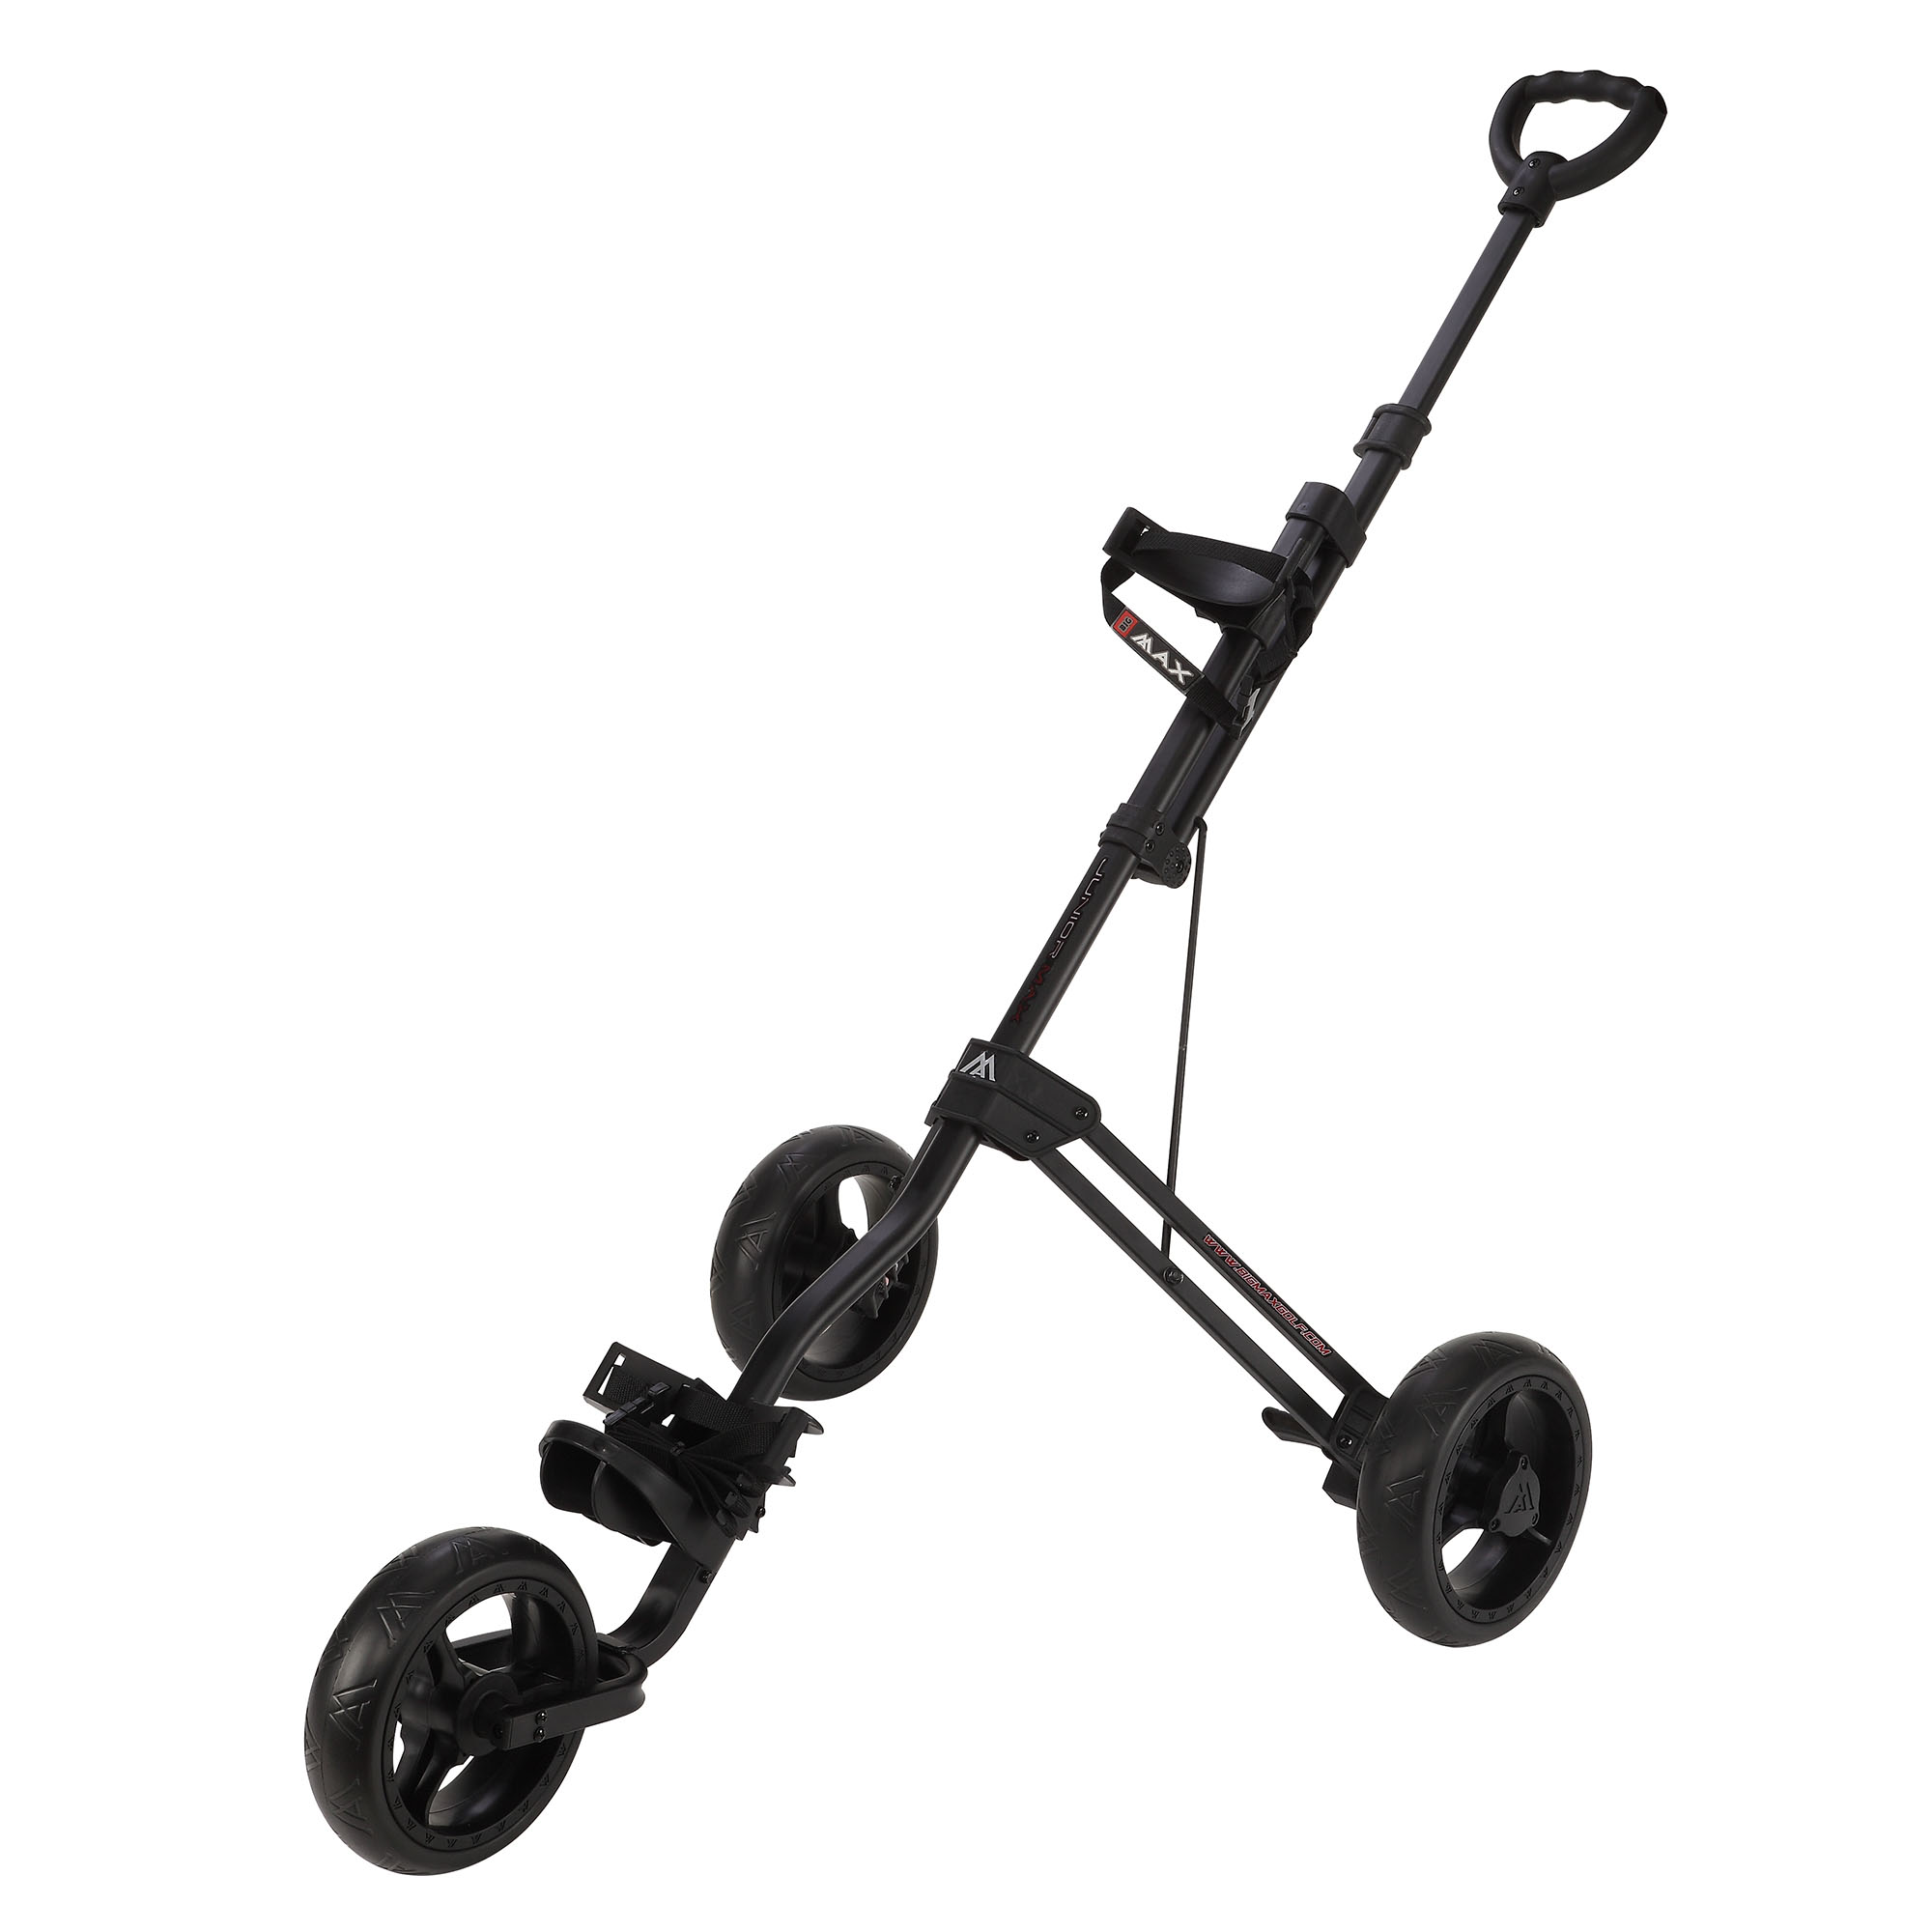 Big Max Junior Max 3 Wheel Golf Trolley